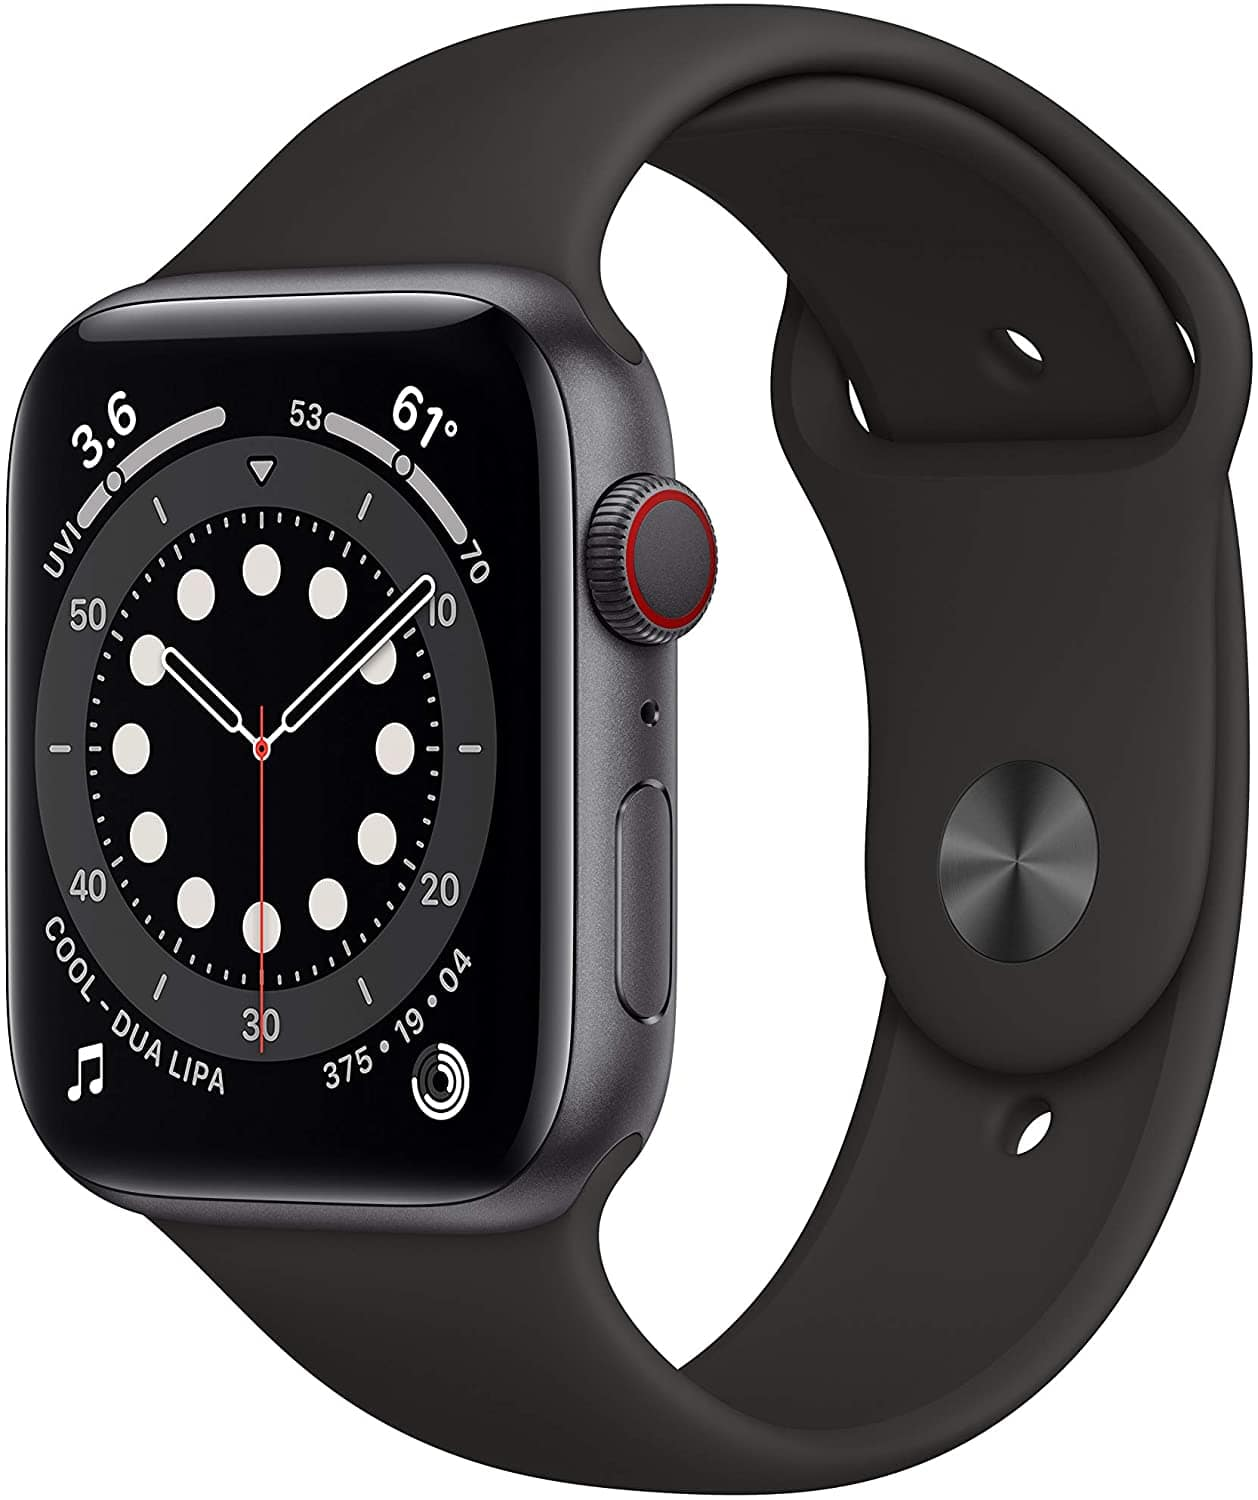 Apple Watch Series 6 (GPS + Cellular, 44mm) with Black Sport Band